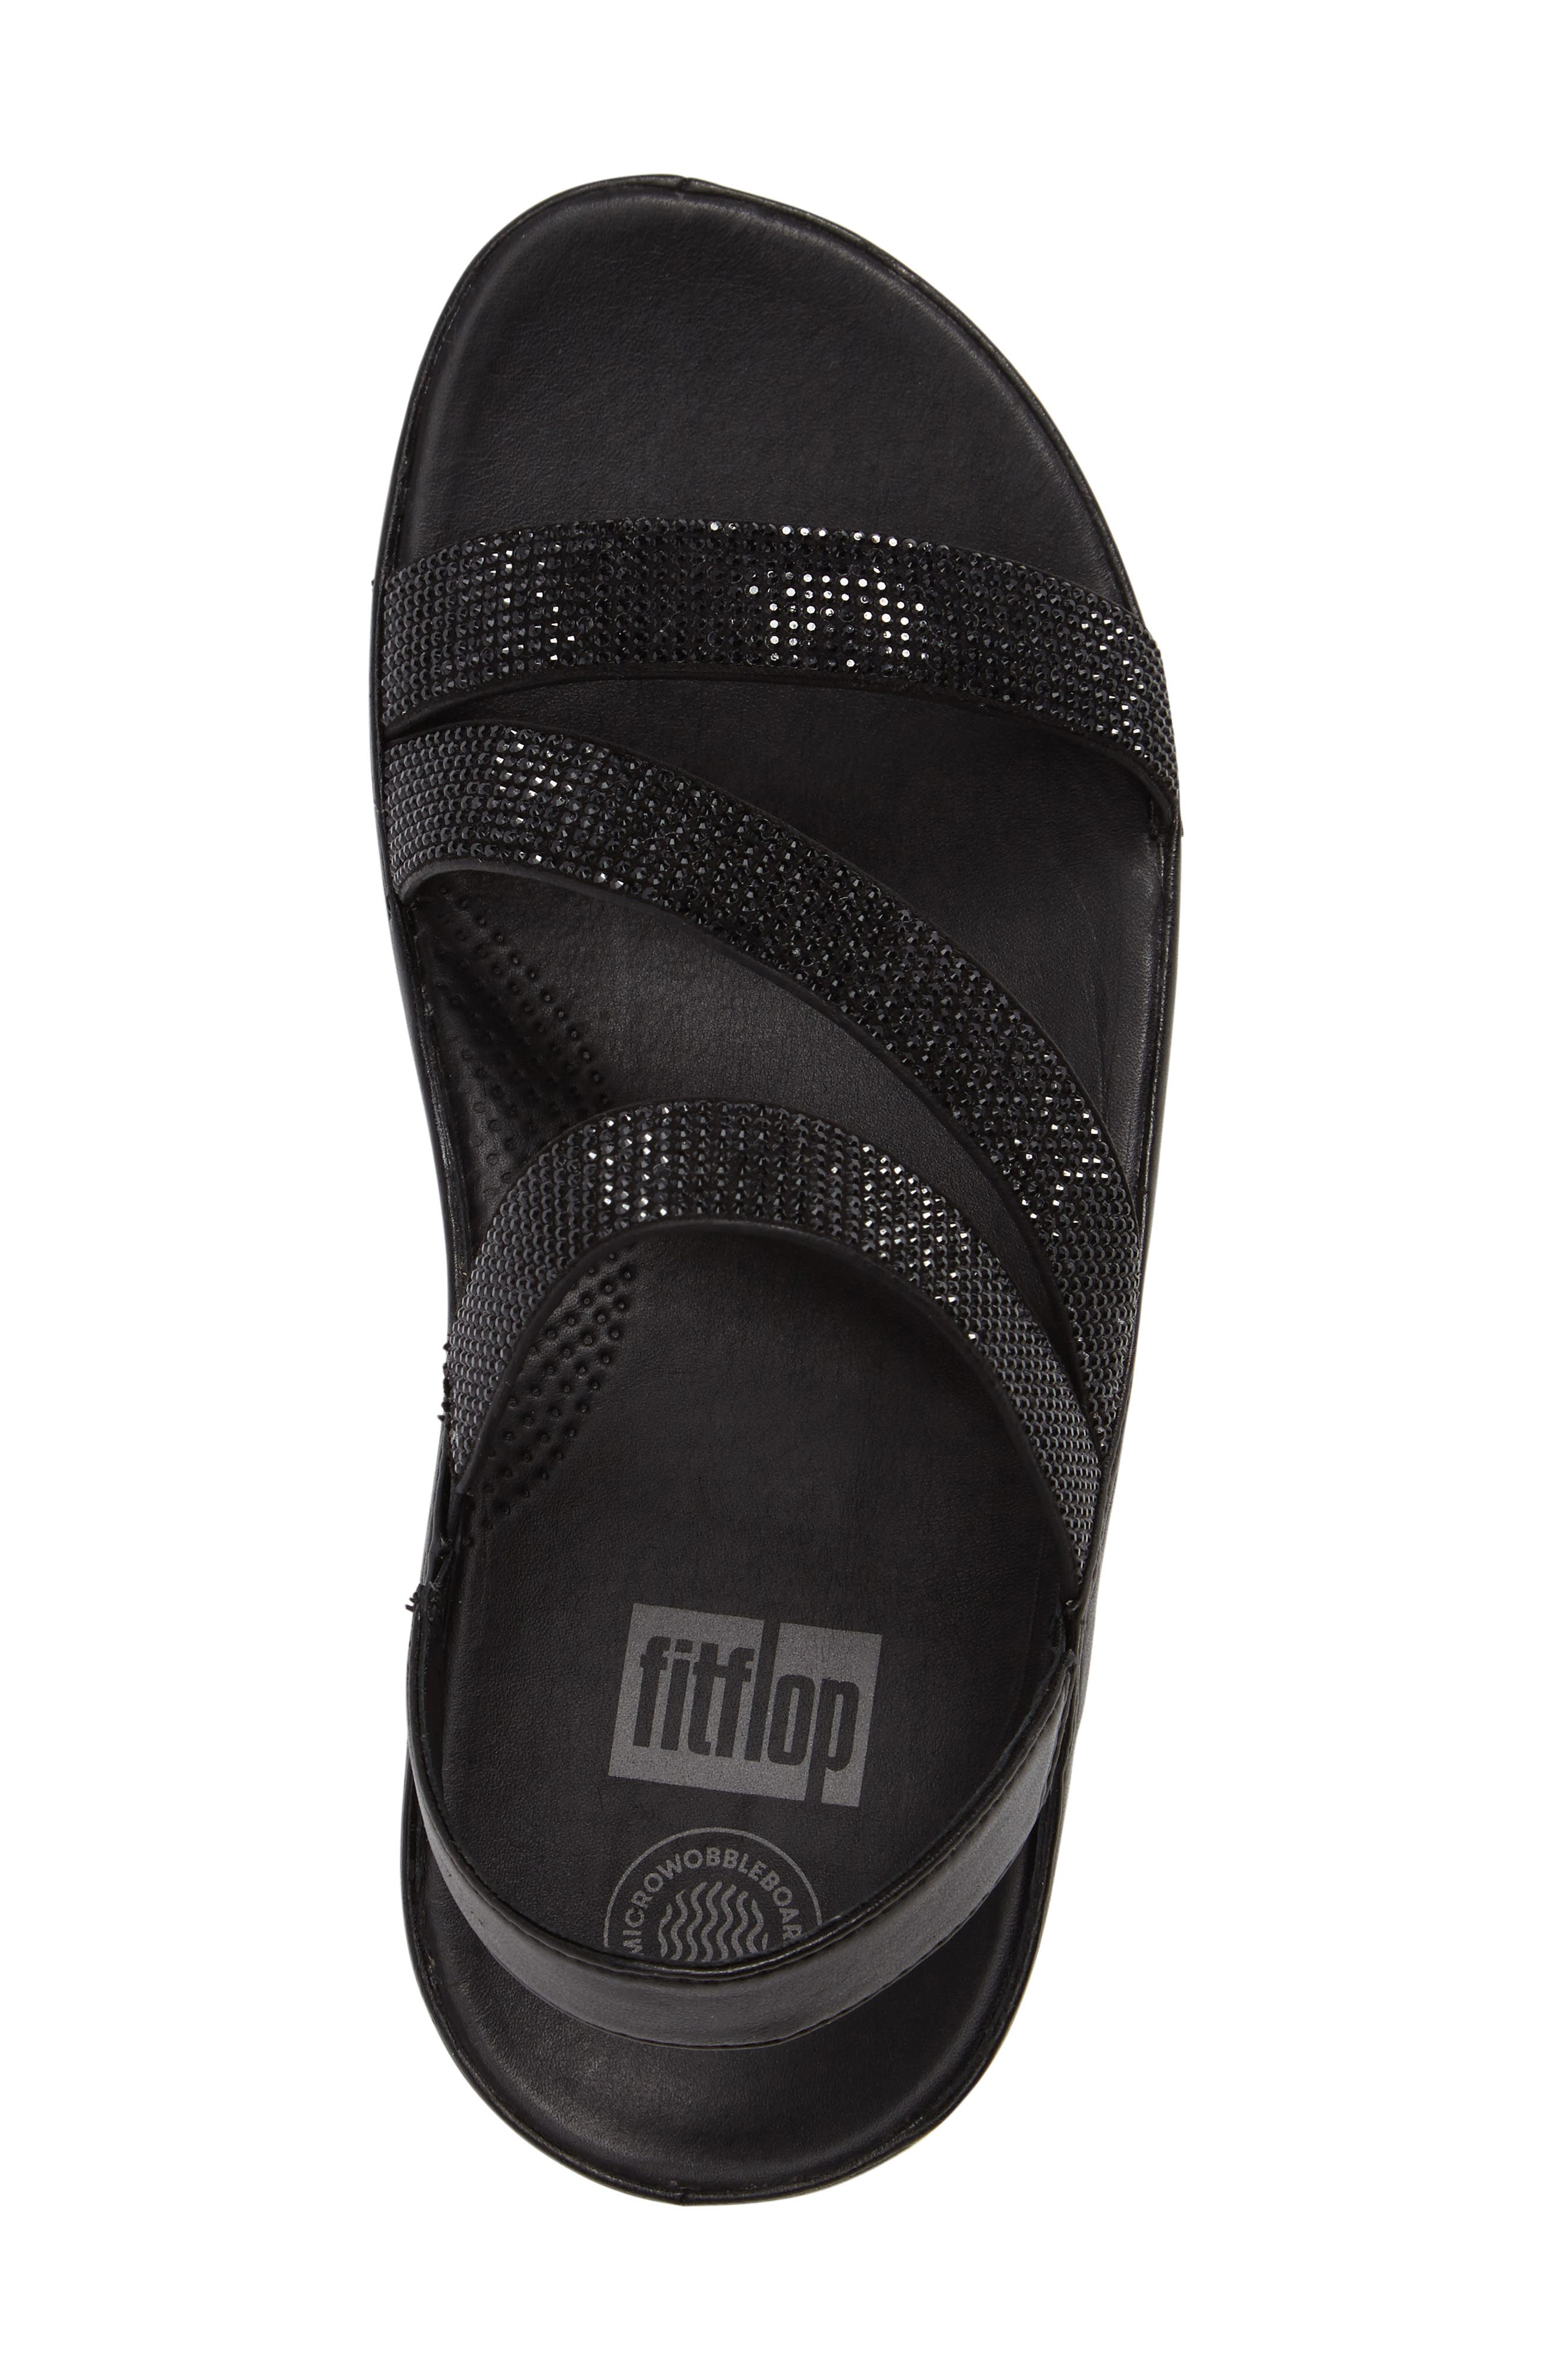 FITFLOP,                              Crystall Wedge Sandal,                             Alternate thumbnail 5, color,                             001